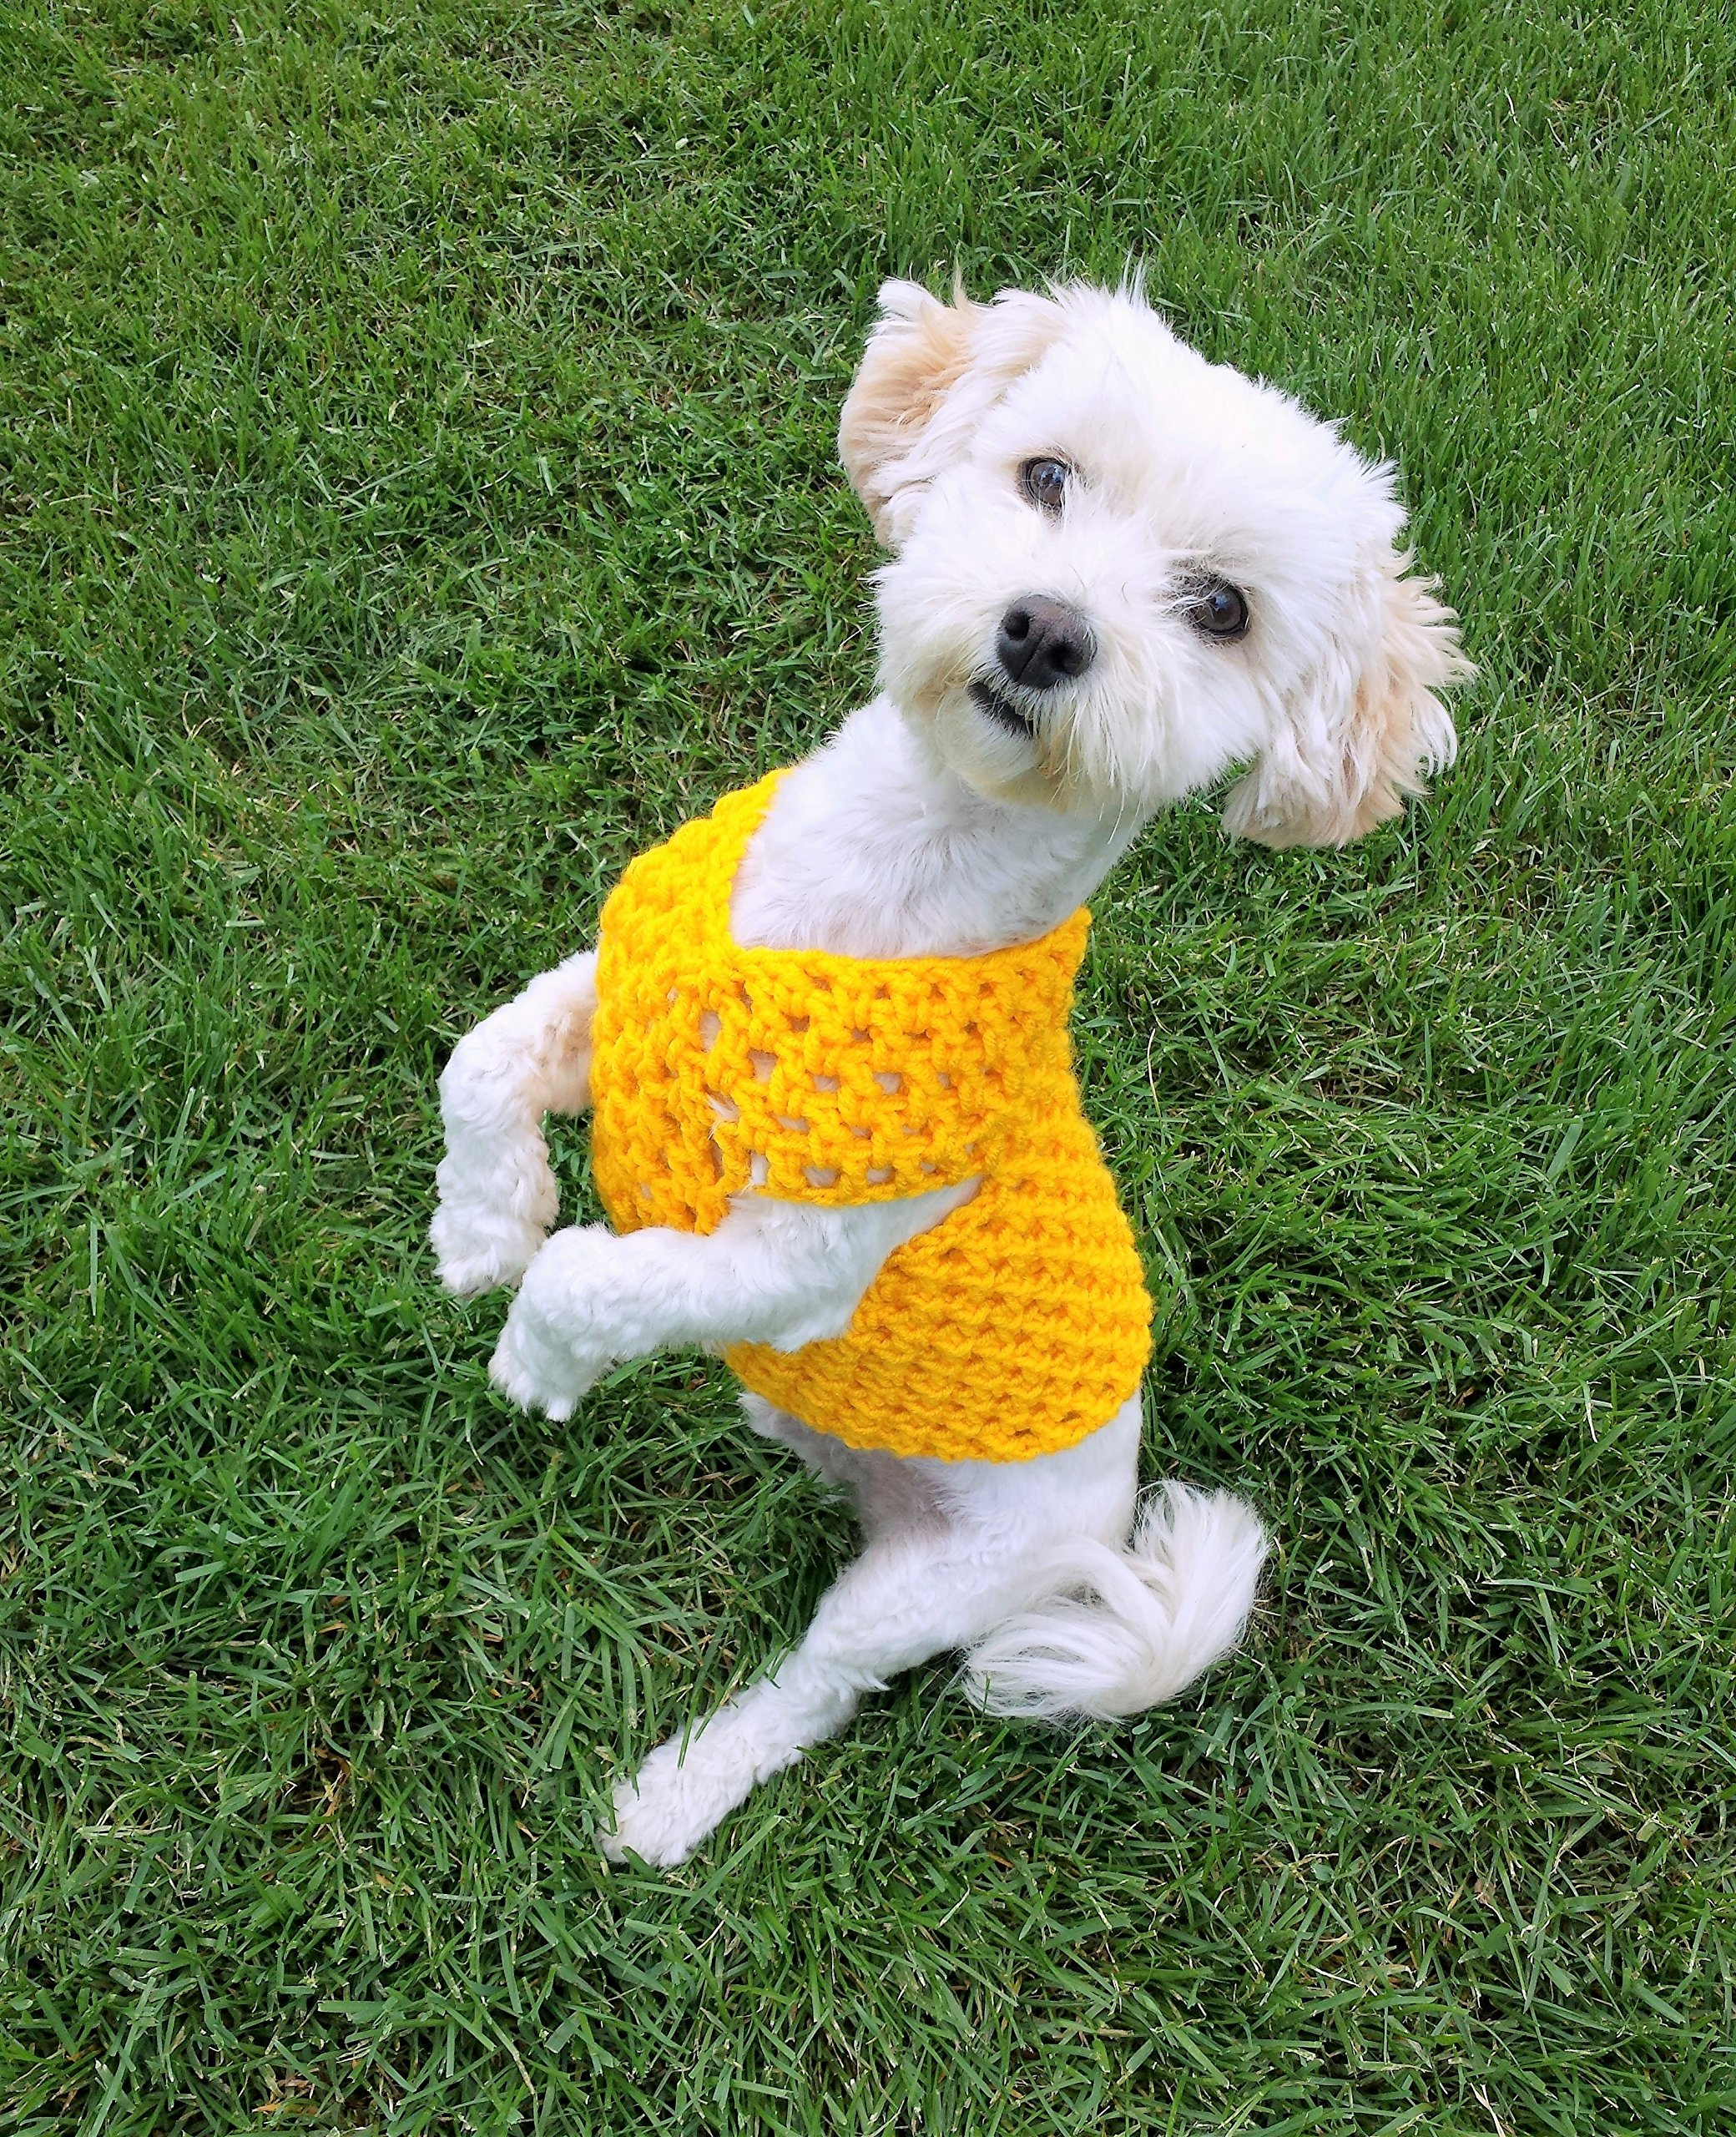 Yellow dog sweater, available in sizes XXS - L